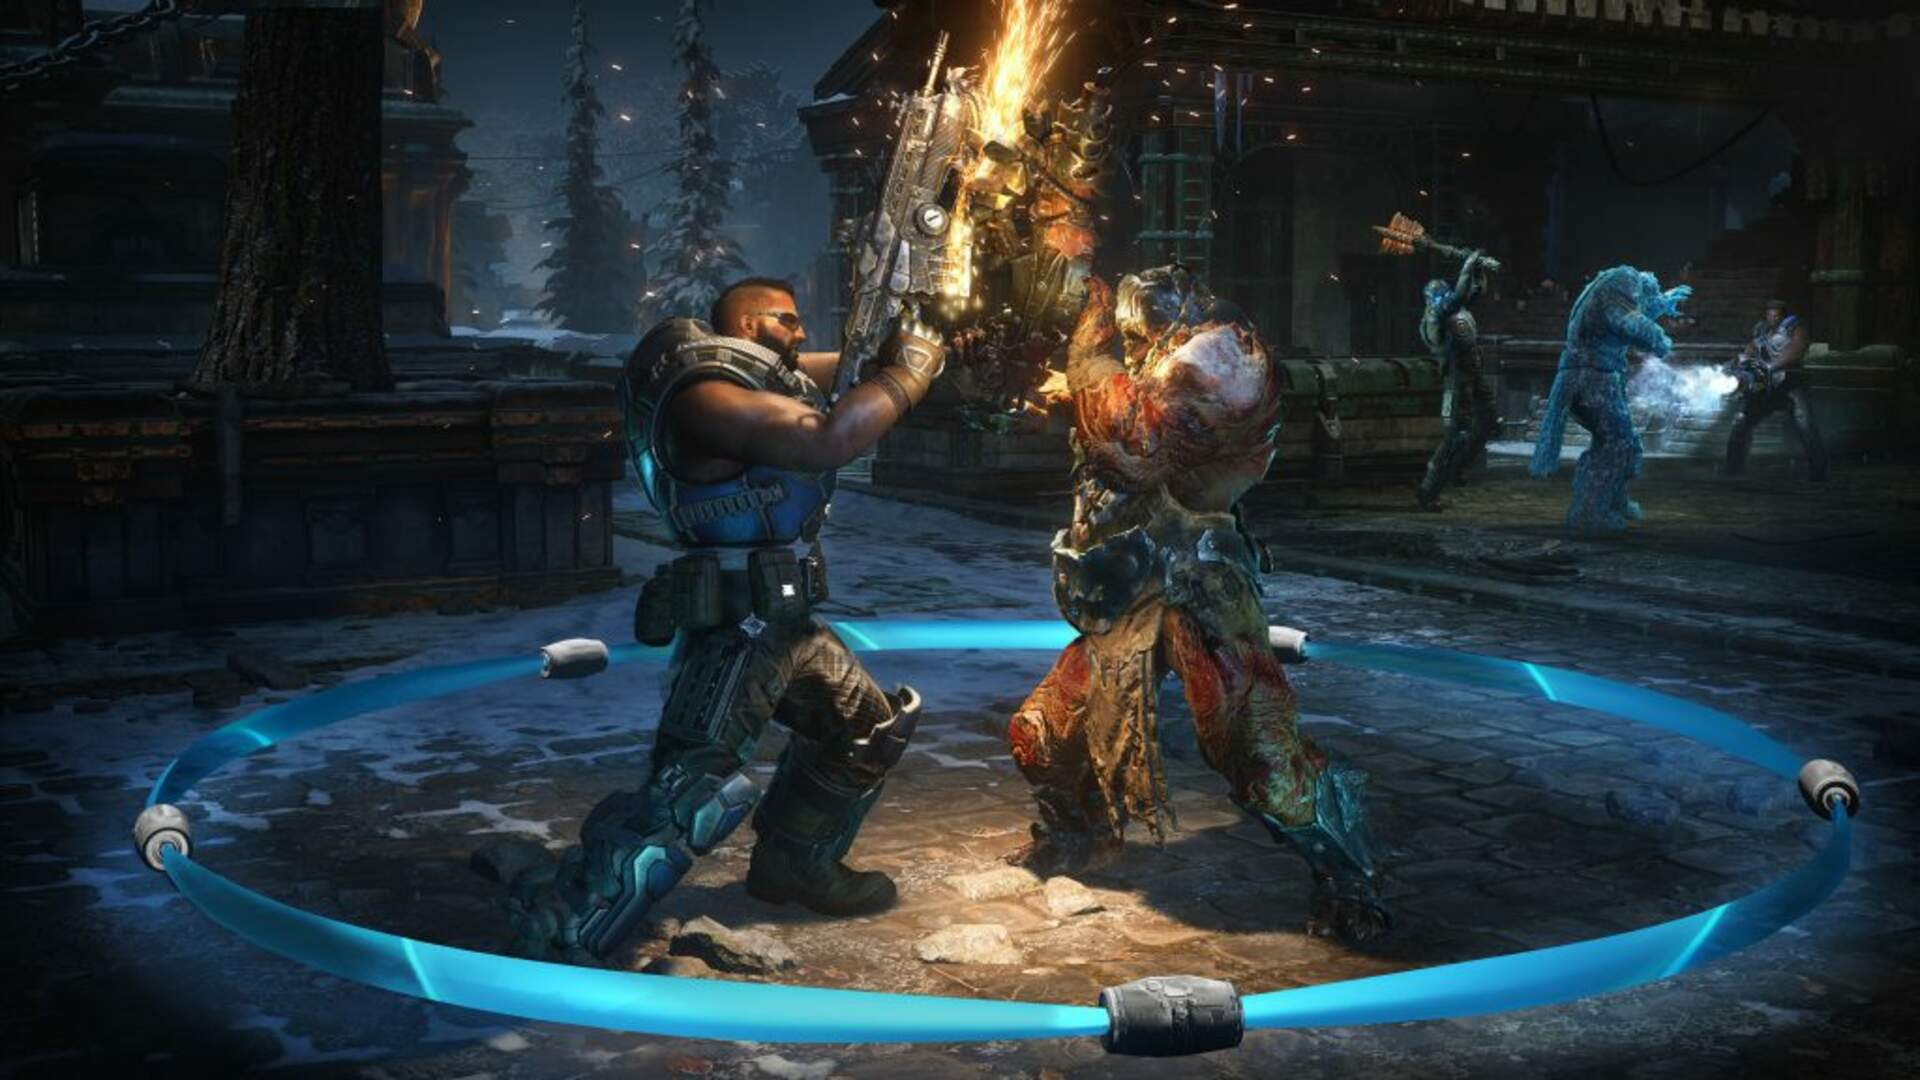 """Rod Fergusson on Gears 5 Microtransactions: """"We Will Continue to Evolve Until We Get It Right"""""""